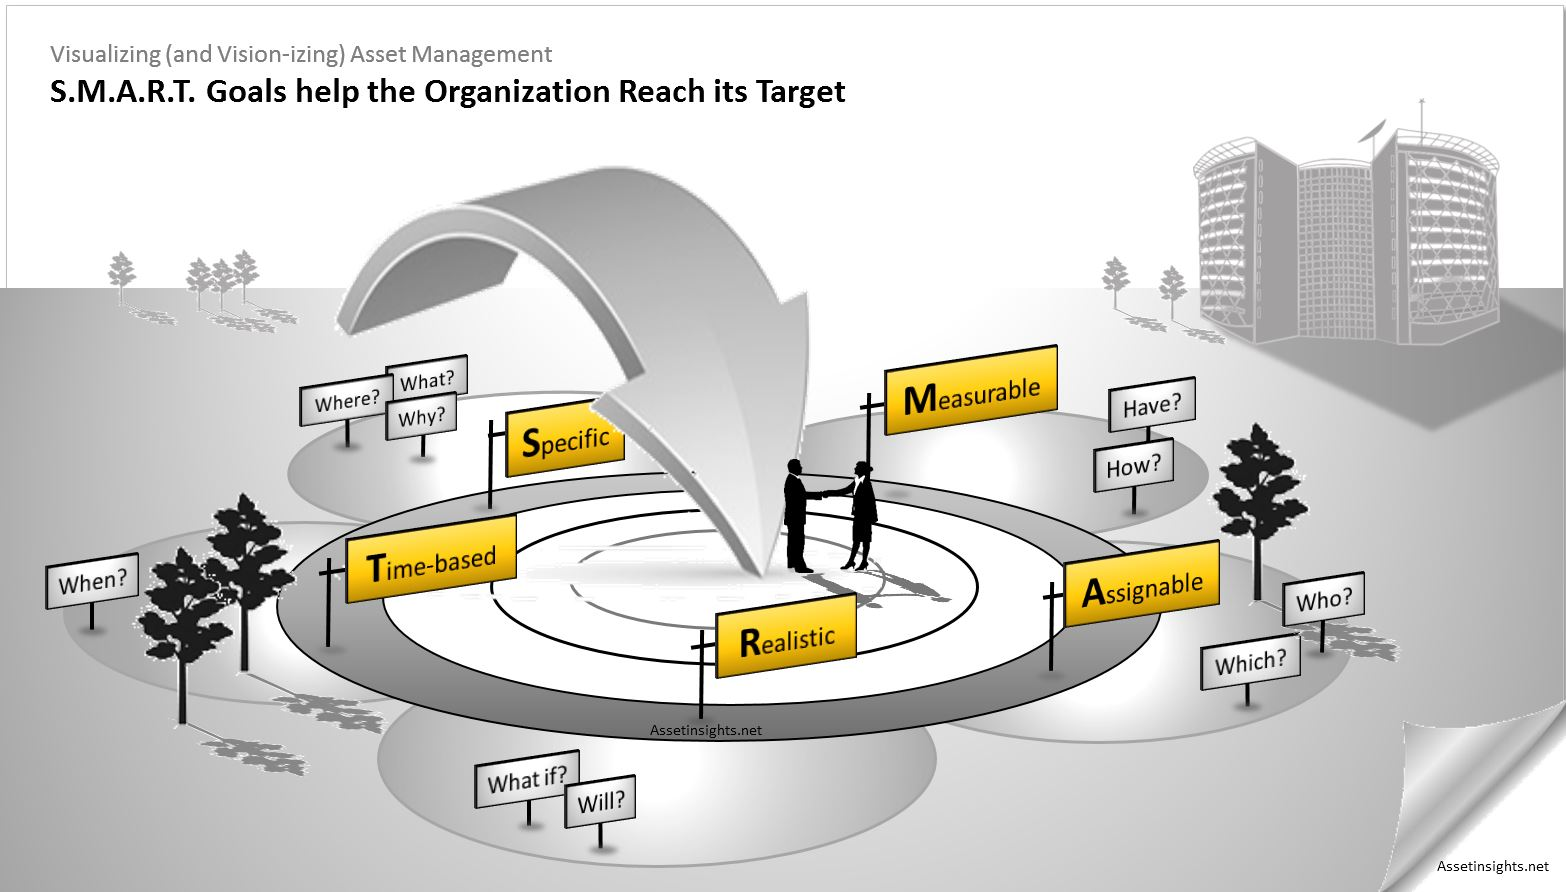 SMART goals help the organization reach its target